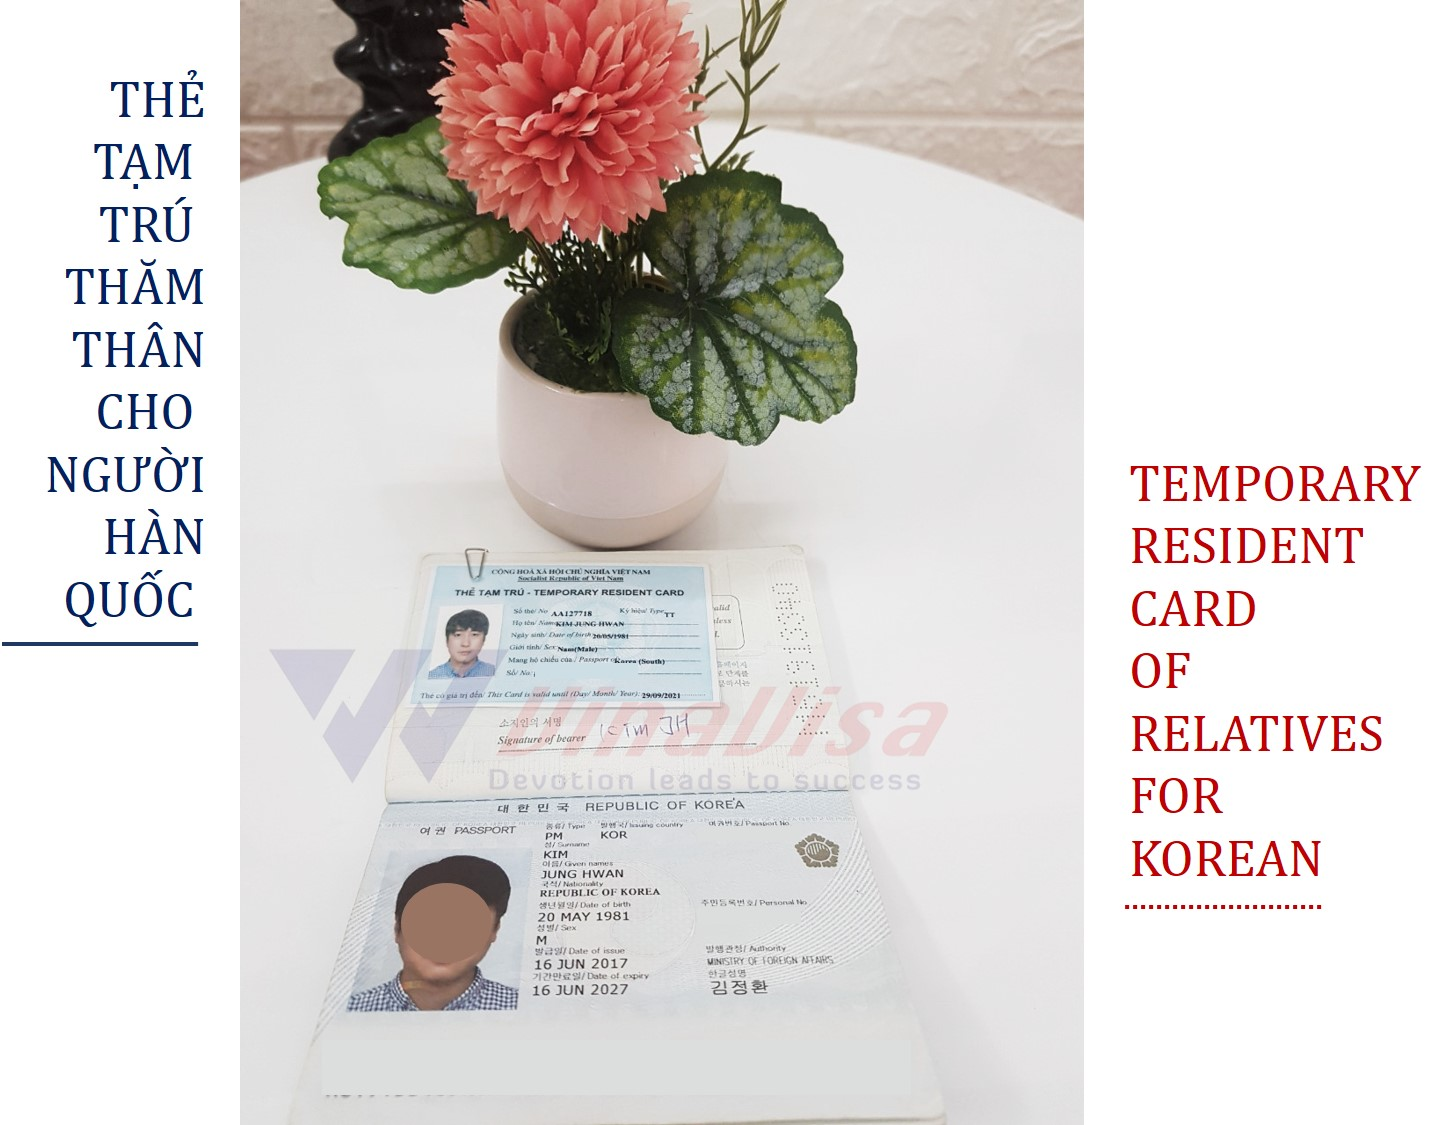 TEMPORARY RESIDENT CARD FOR SPOUSES OF FOREIGNERS WORKING AND LIVING IN VIETNAM